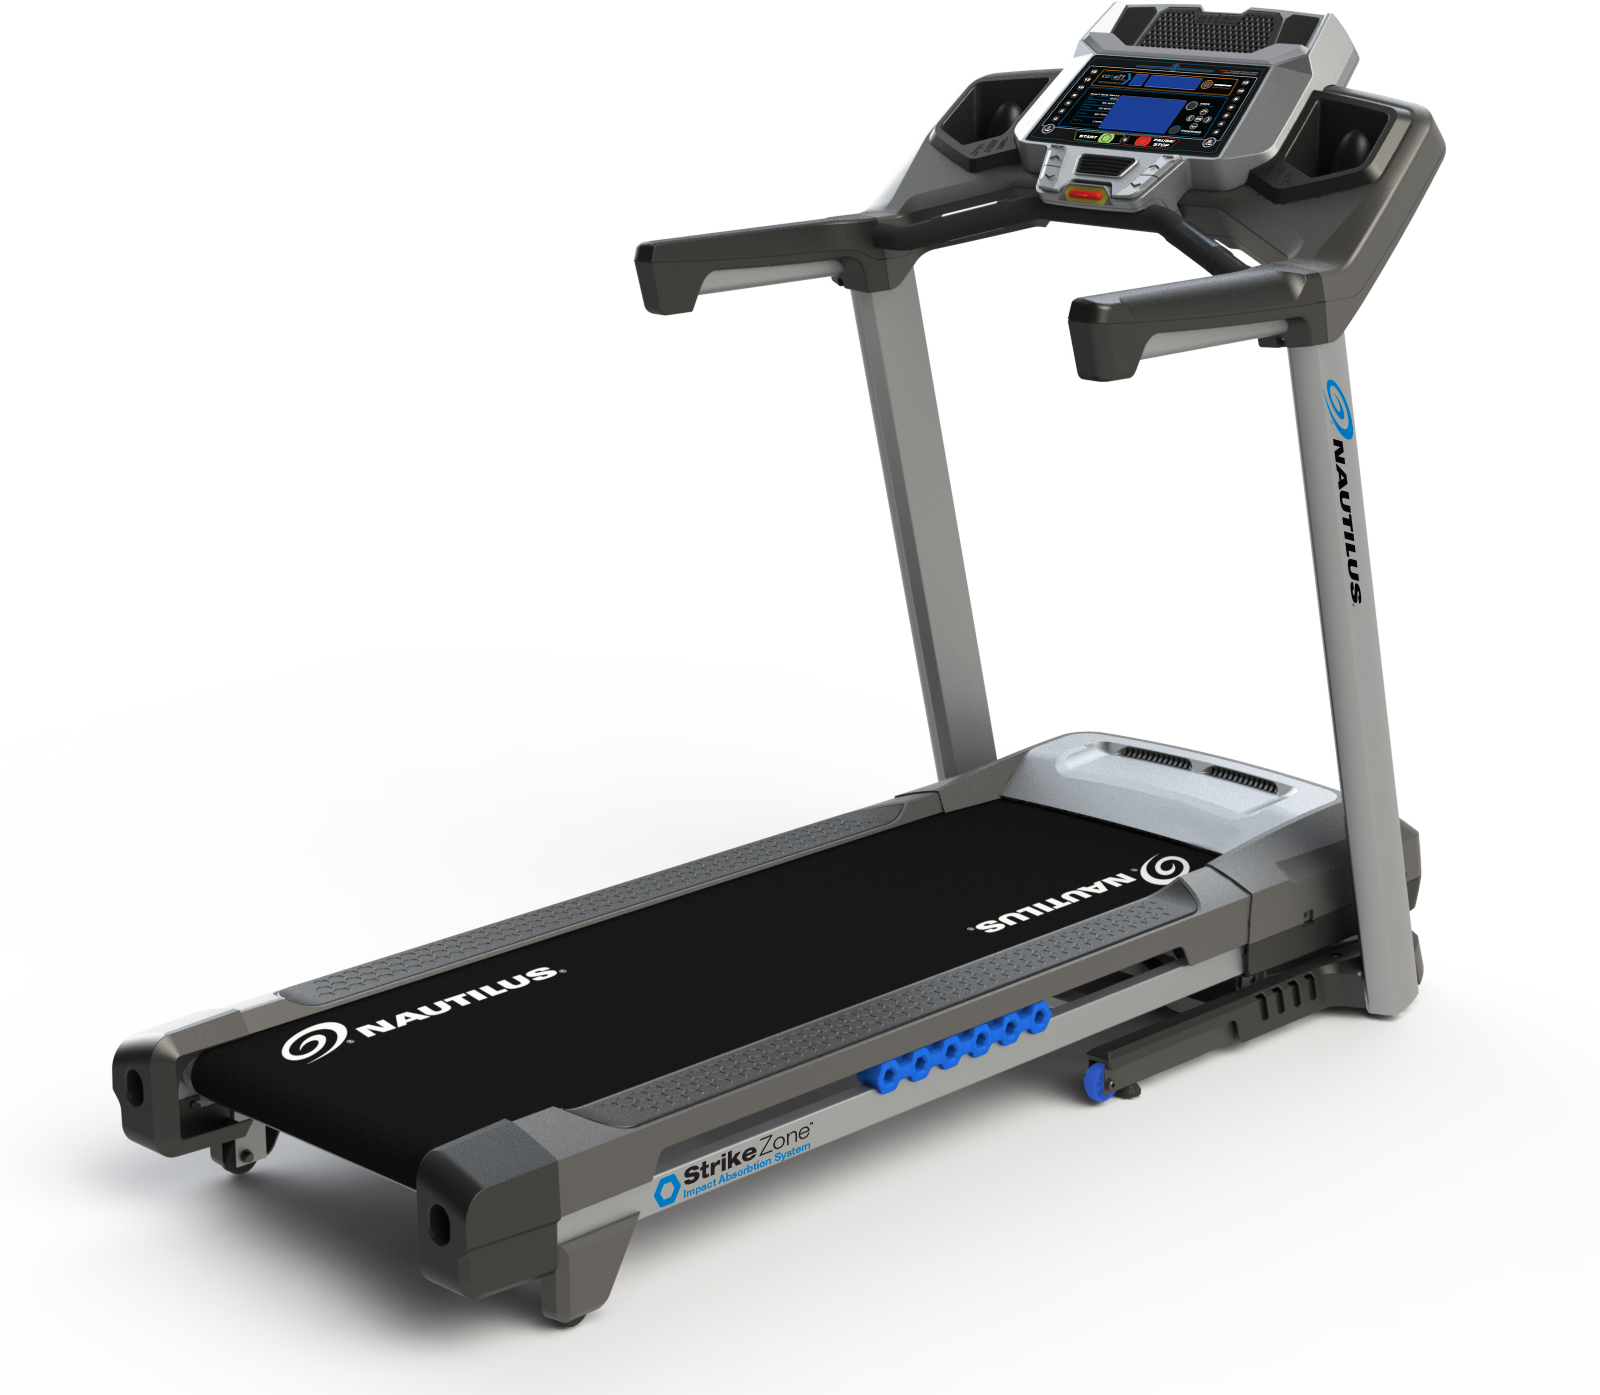 Nautilus T616 Treadmill with 3.0 CHP Motor and 15% Incline by